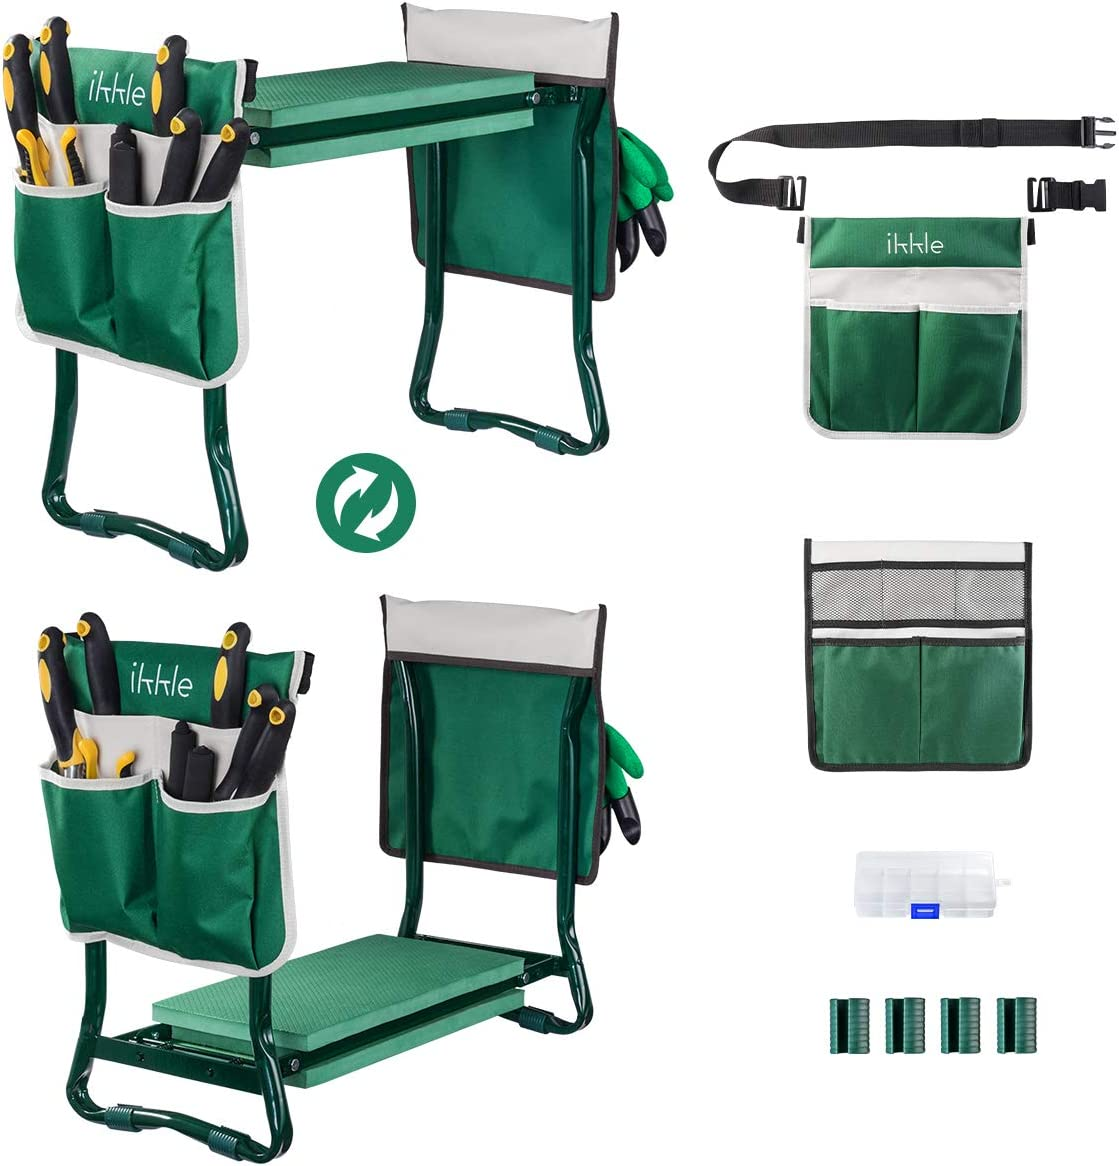 Garden Kneeler and Seat, Upgraded Folding Garden Bench Stool Portable Garden Kneeler Sturdy Gardening Tools with 2 Free Tool Pouch, Detachable Belt, EVA Kneeling Pad, Ideal Gardening Gift